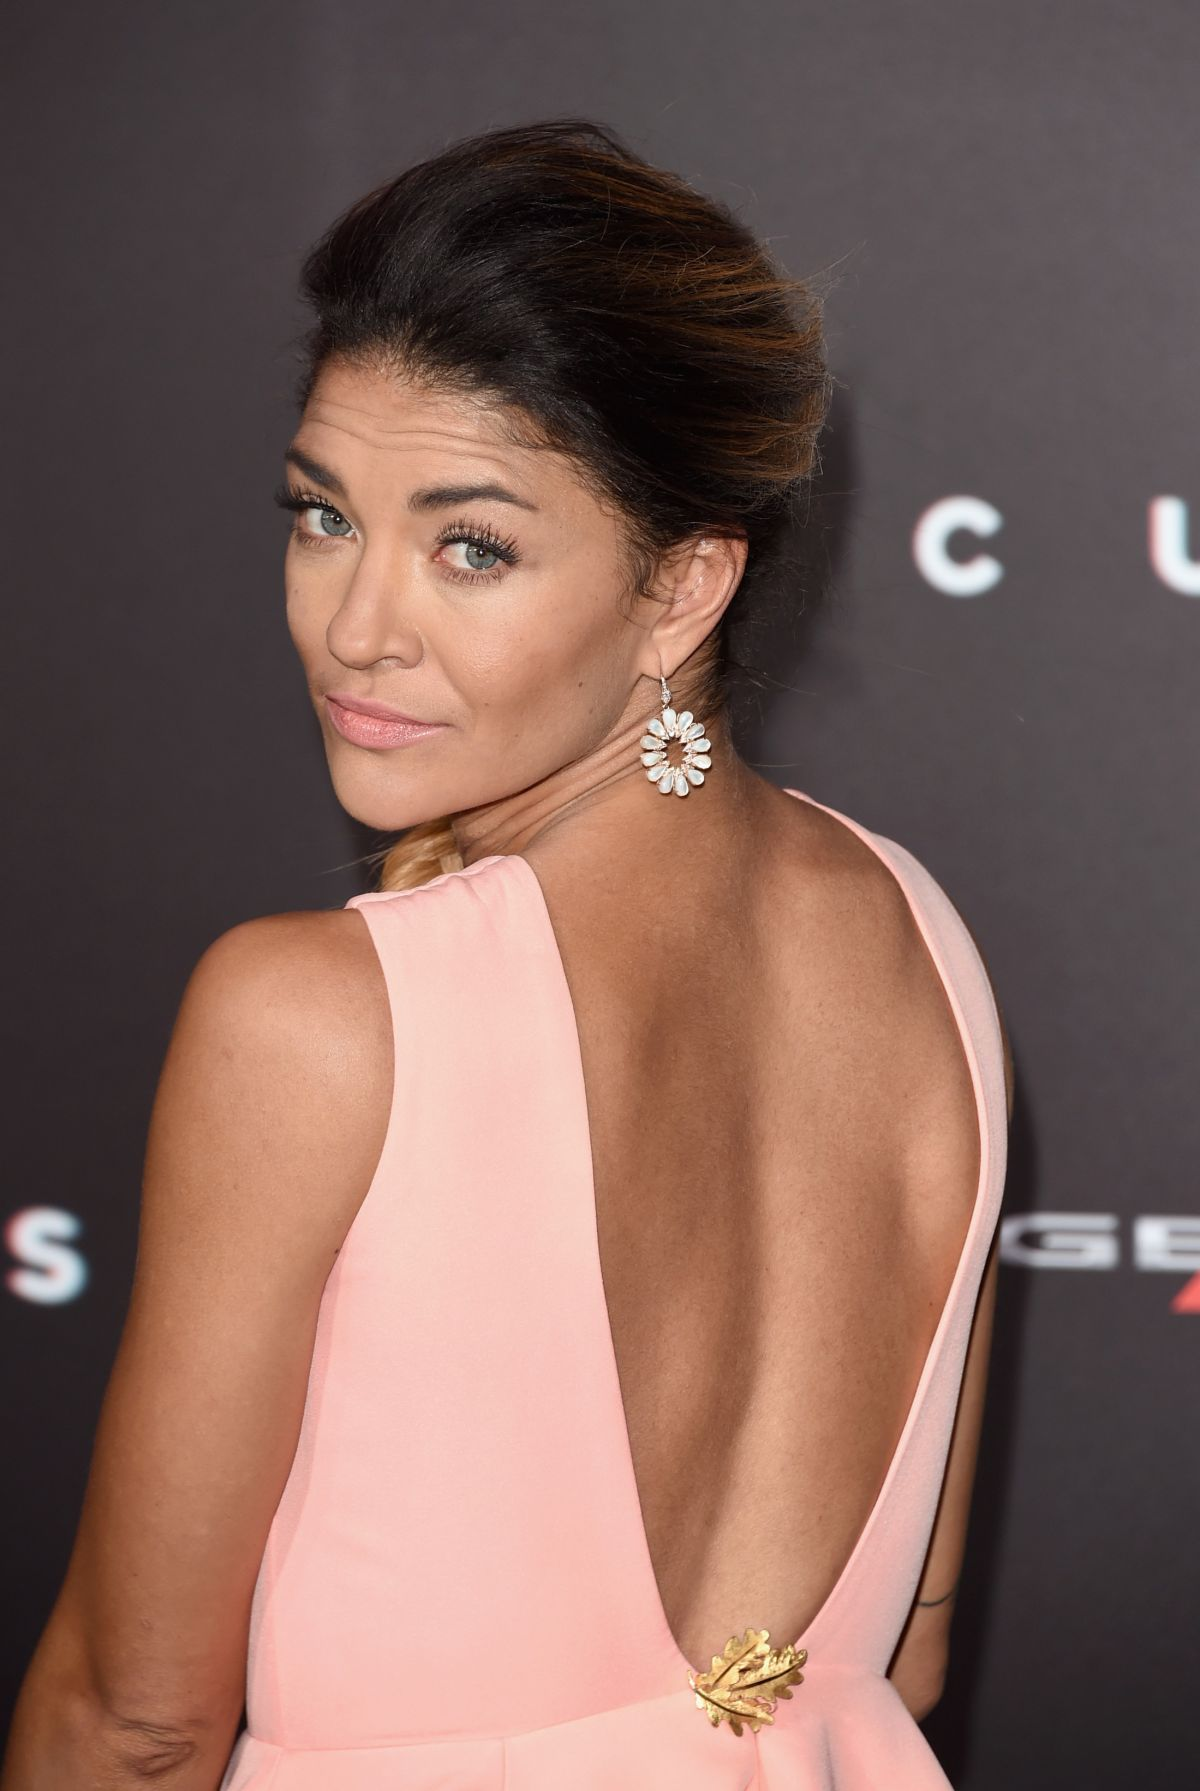 JESSICA SZOHR at Wheels LA Launch Party in Los Angeles 03